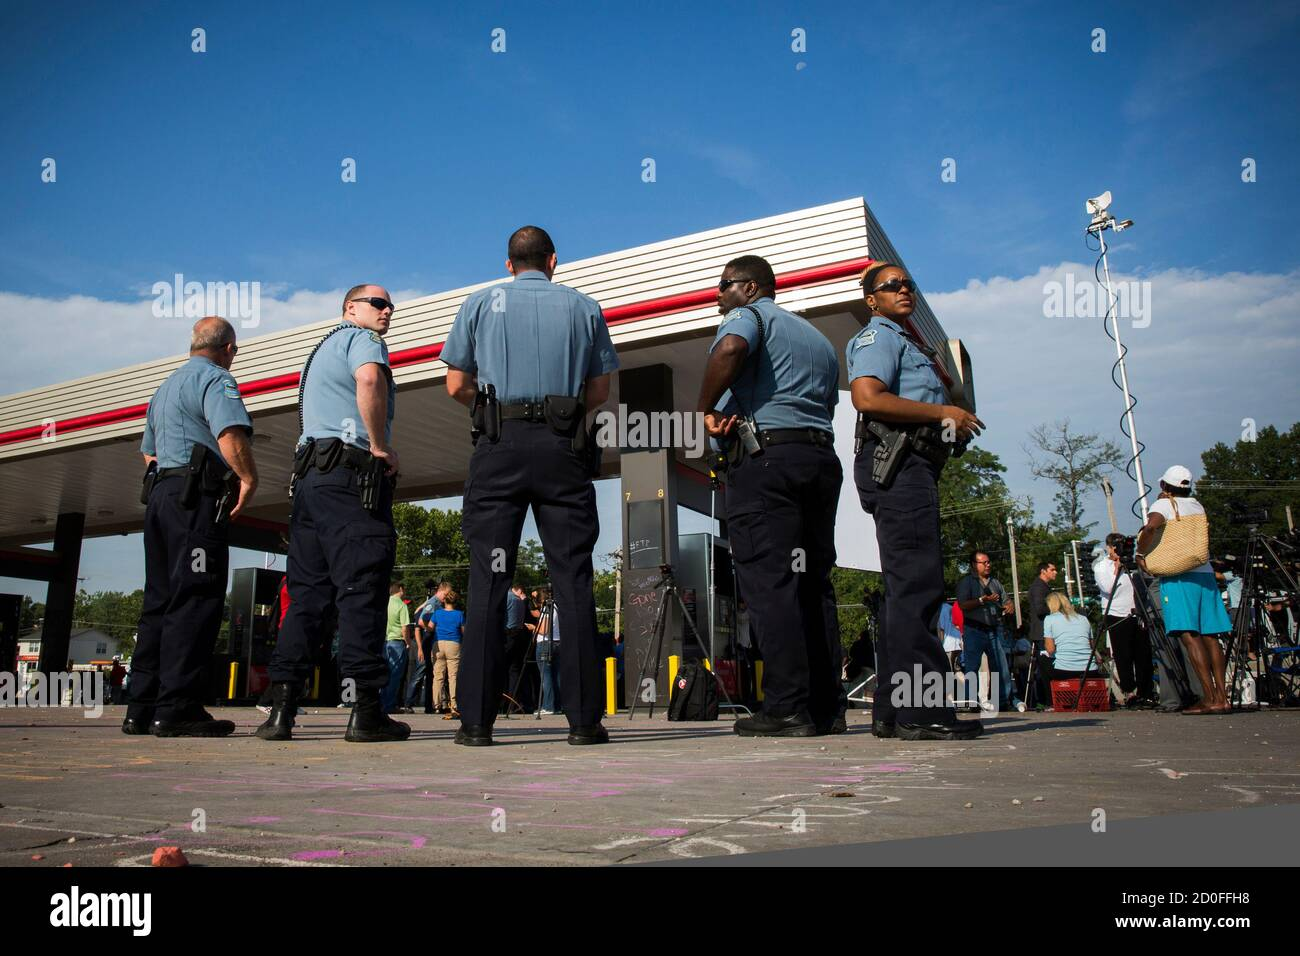 Thomas Wilson Brown High Resolution Stock Photography And Images Alamy Find the latest breaking news and information on the top stories, weather, business, entertainment, politics, and more. https www alamy com police officers stand by after the announcement of the name of the officer involved in the shooting of michael brown in ferguson missouri august 15 2014 police chief thomas jackson on friday identified darren wilson as the police officer who fatally shoot an unarmed black teenager which led to days of sometimes violent demonstrations jackson announced the name at a press conference held near a quiktrip convenience store that had been burned amid protests over the shooting of brown 18 last saturday reuterslucas jackson united states tags civil unrest crime law image378969620 html